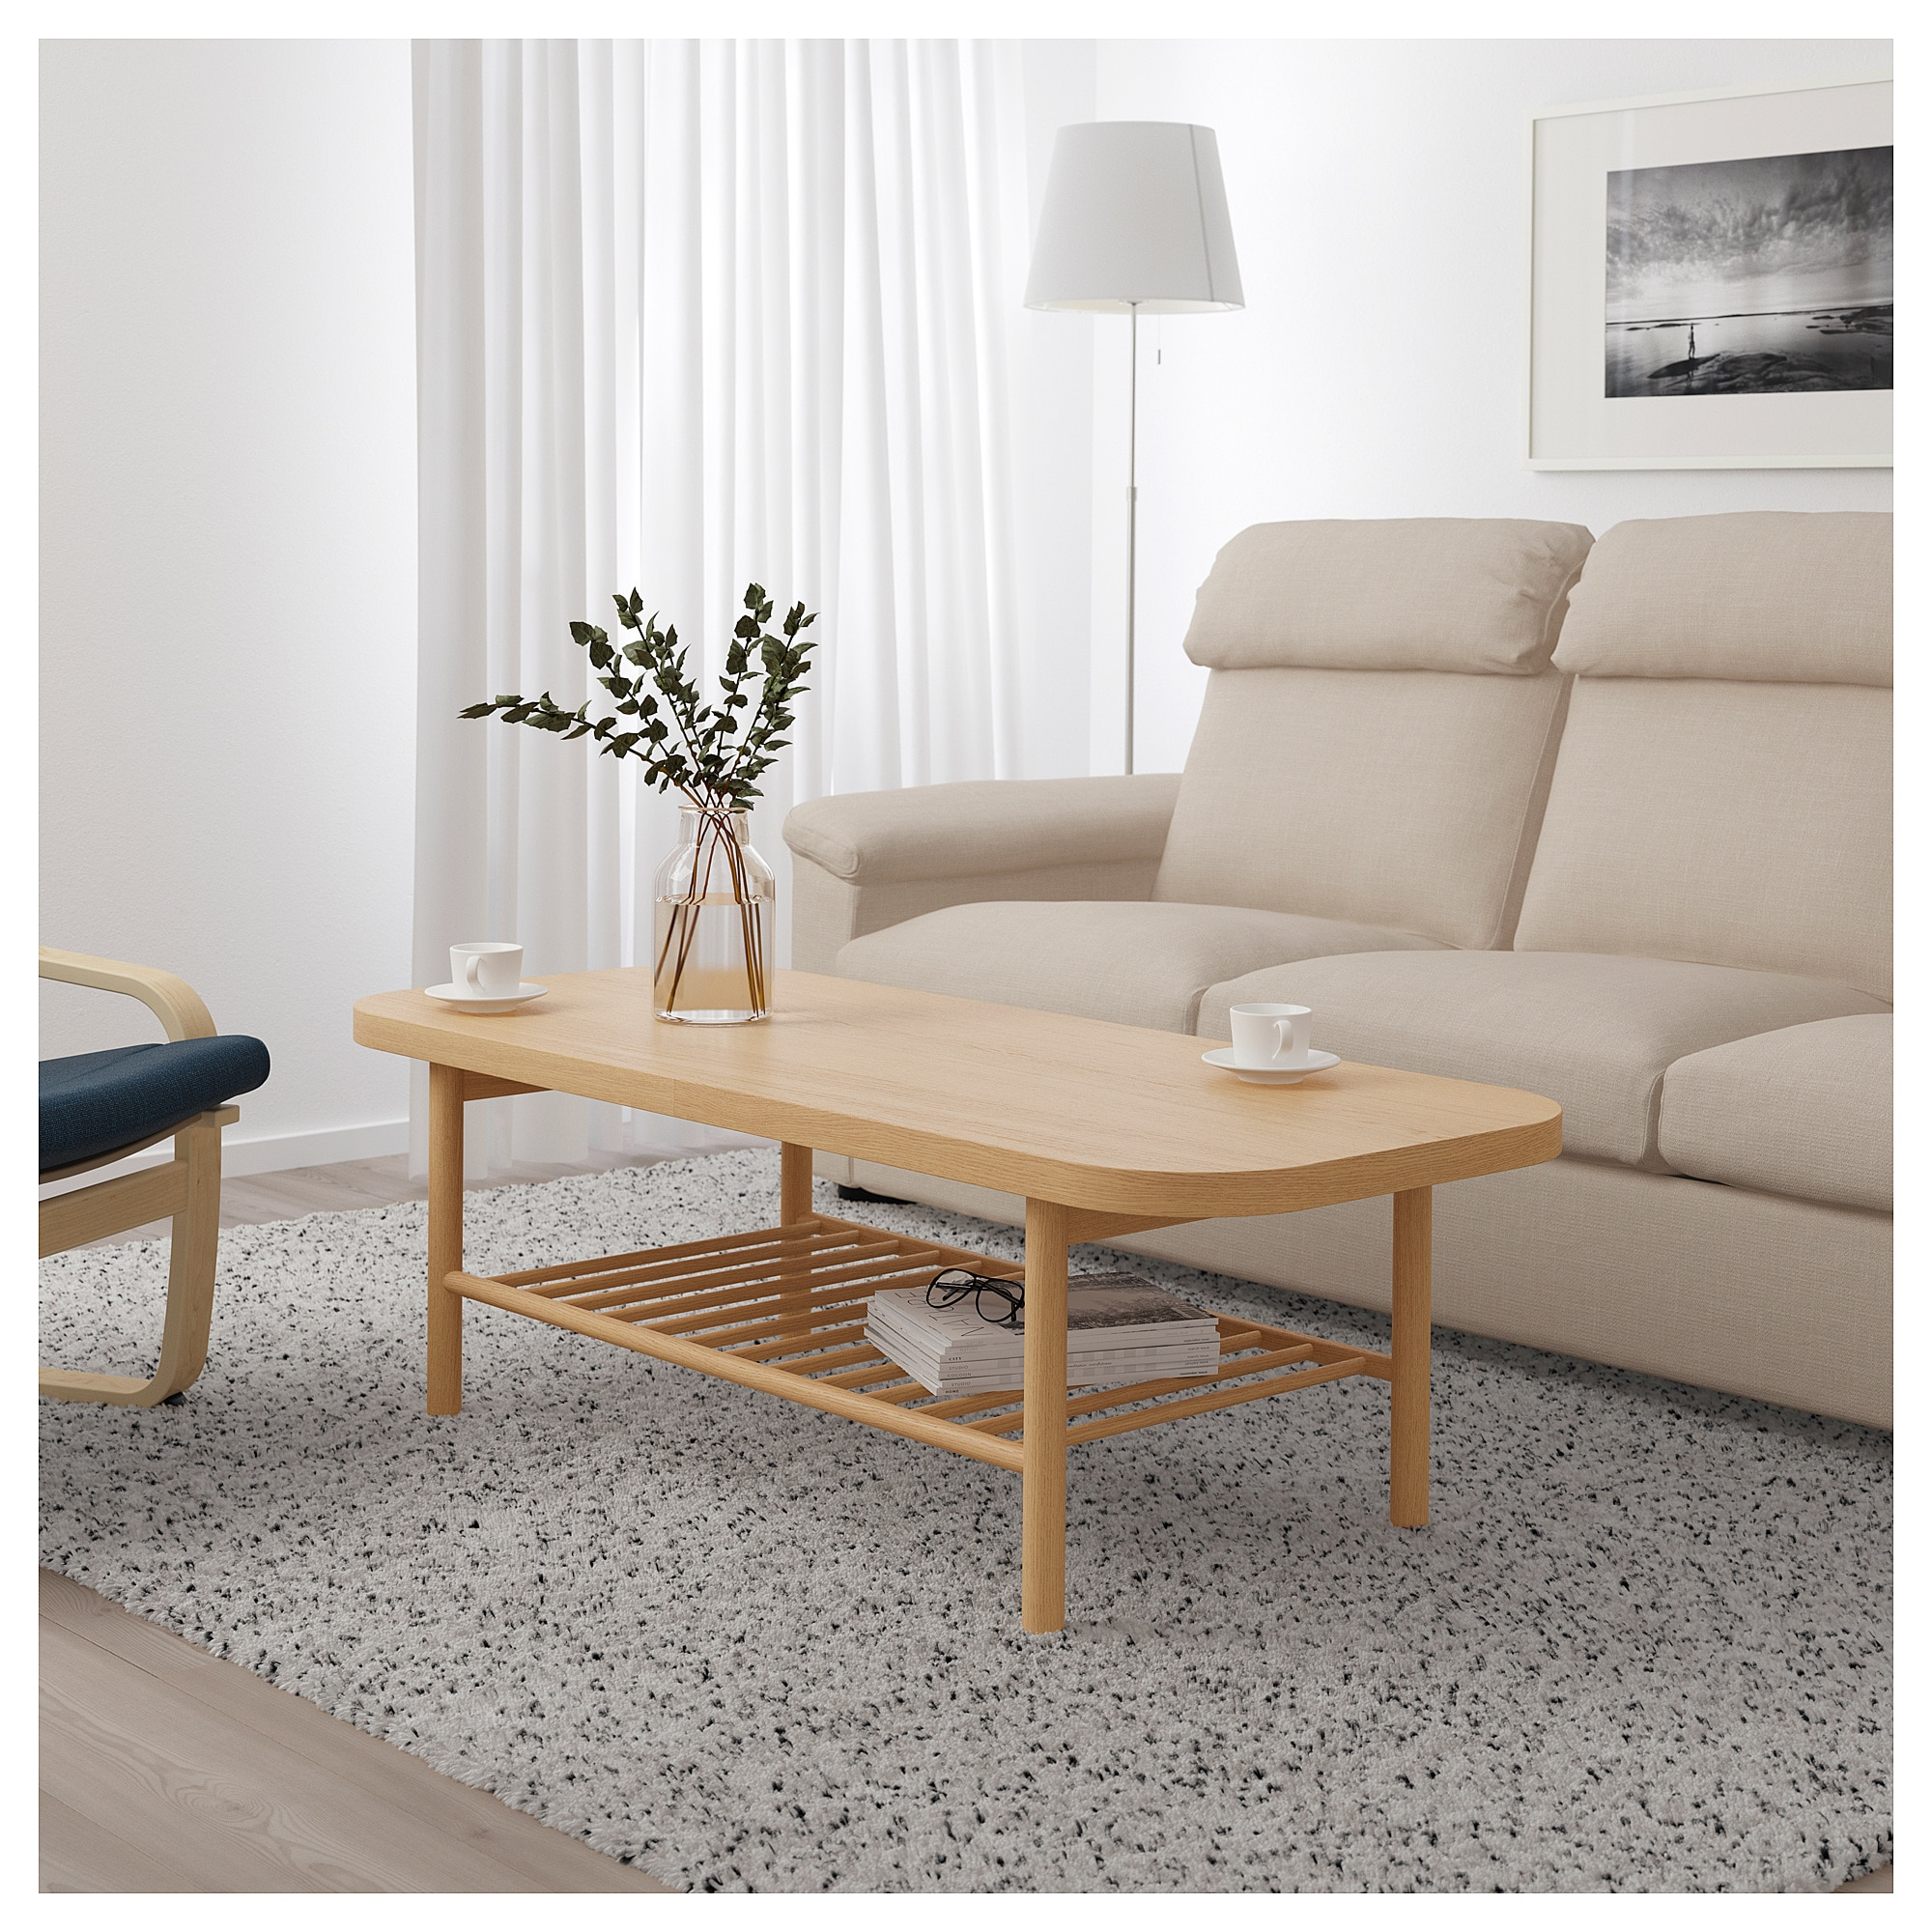 LISTERBY white stained oak, Coffee table, 140x60 cm IKEA